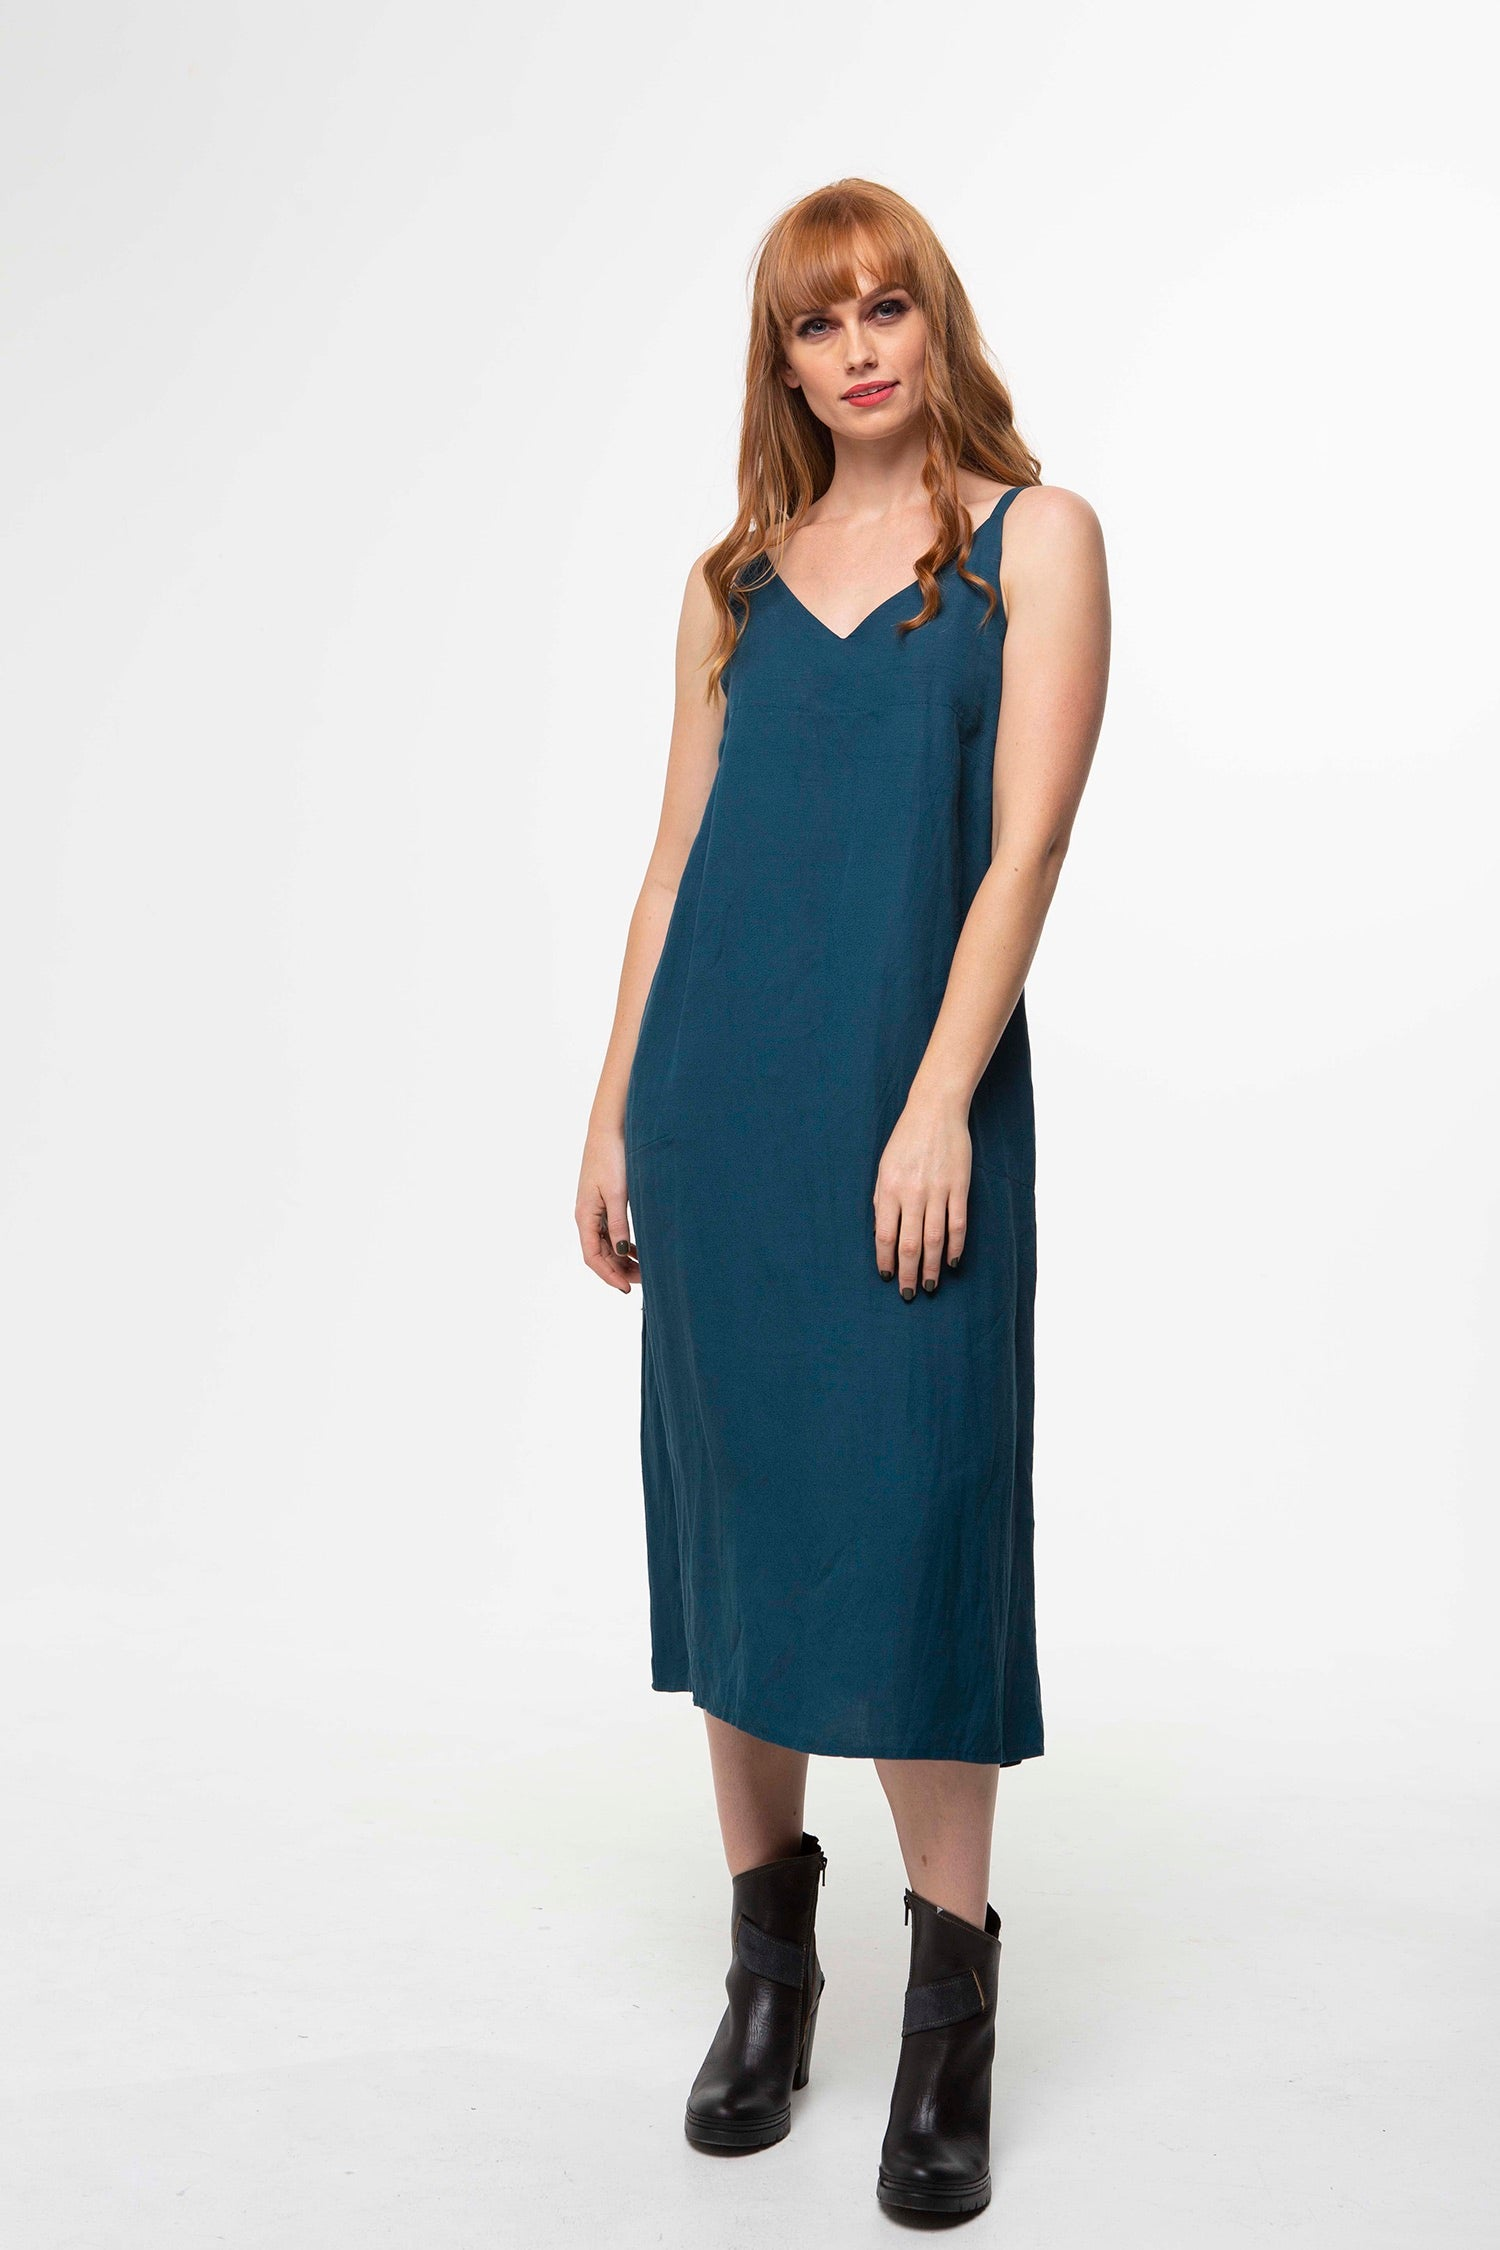 Juna Pocket Pinni Dress - Envy